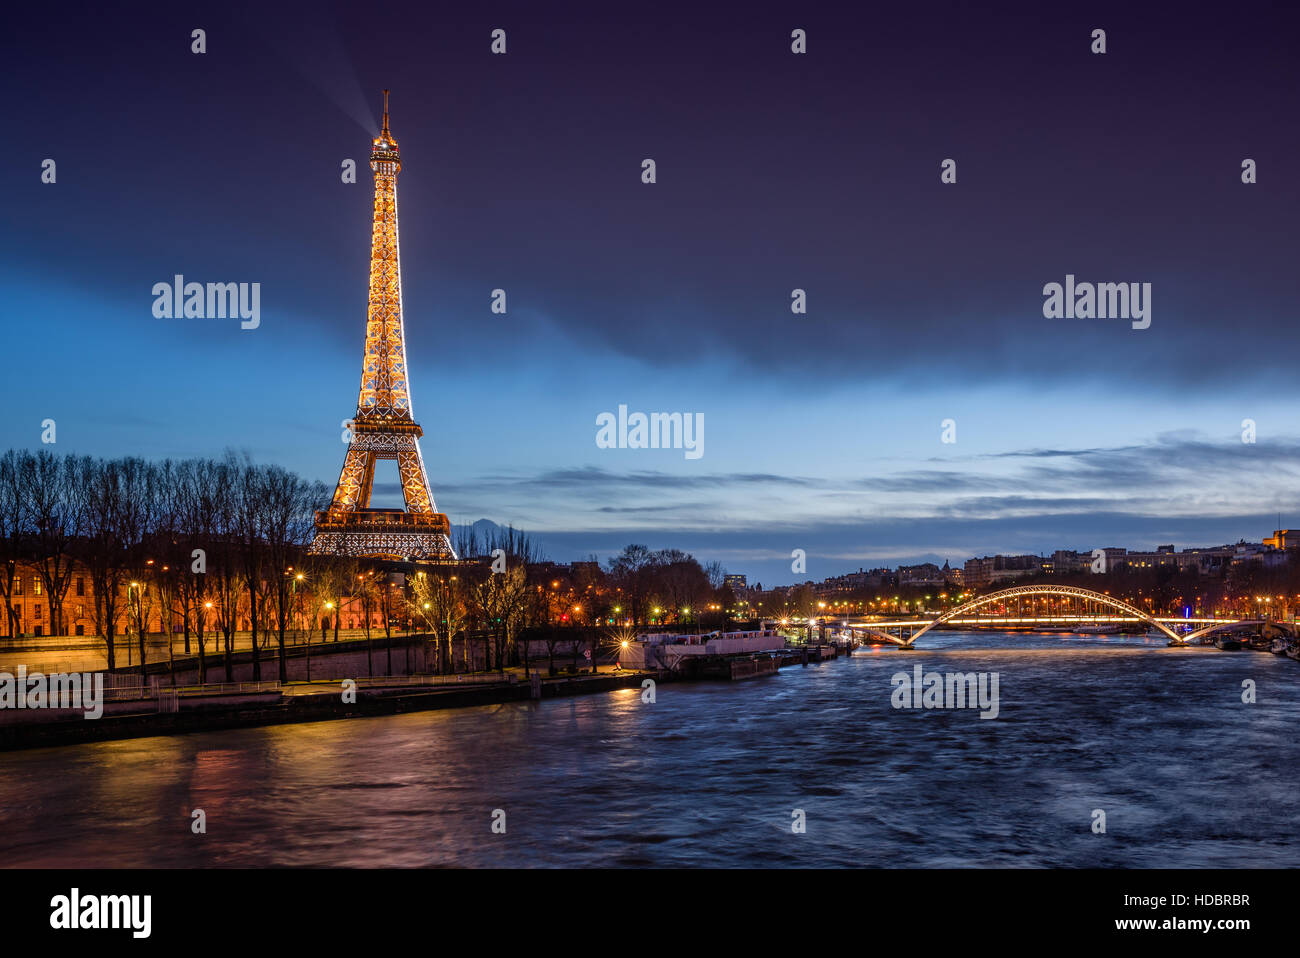 The Eiffel Tower illuminated at twilight with banks of the Seine River and the Debilly Footbridge. Paris, France - Stock Image